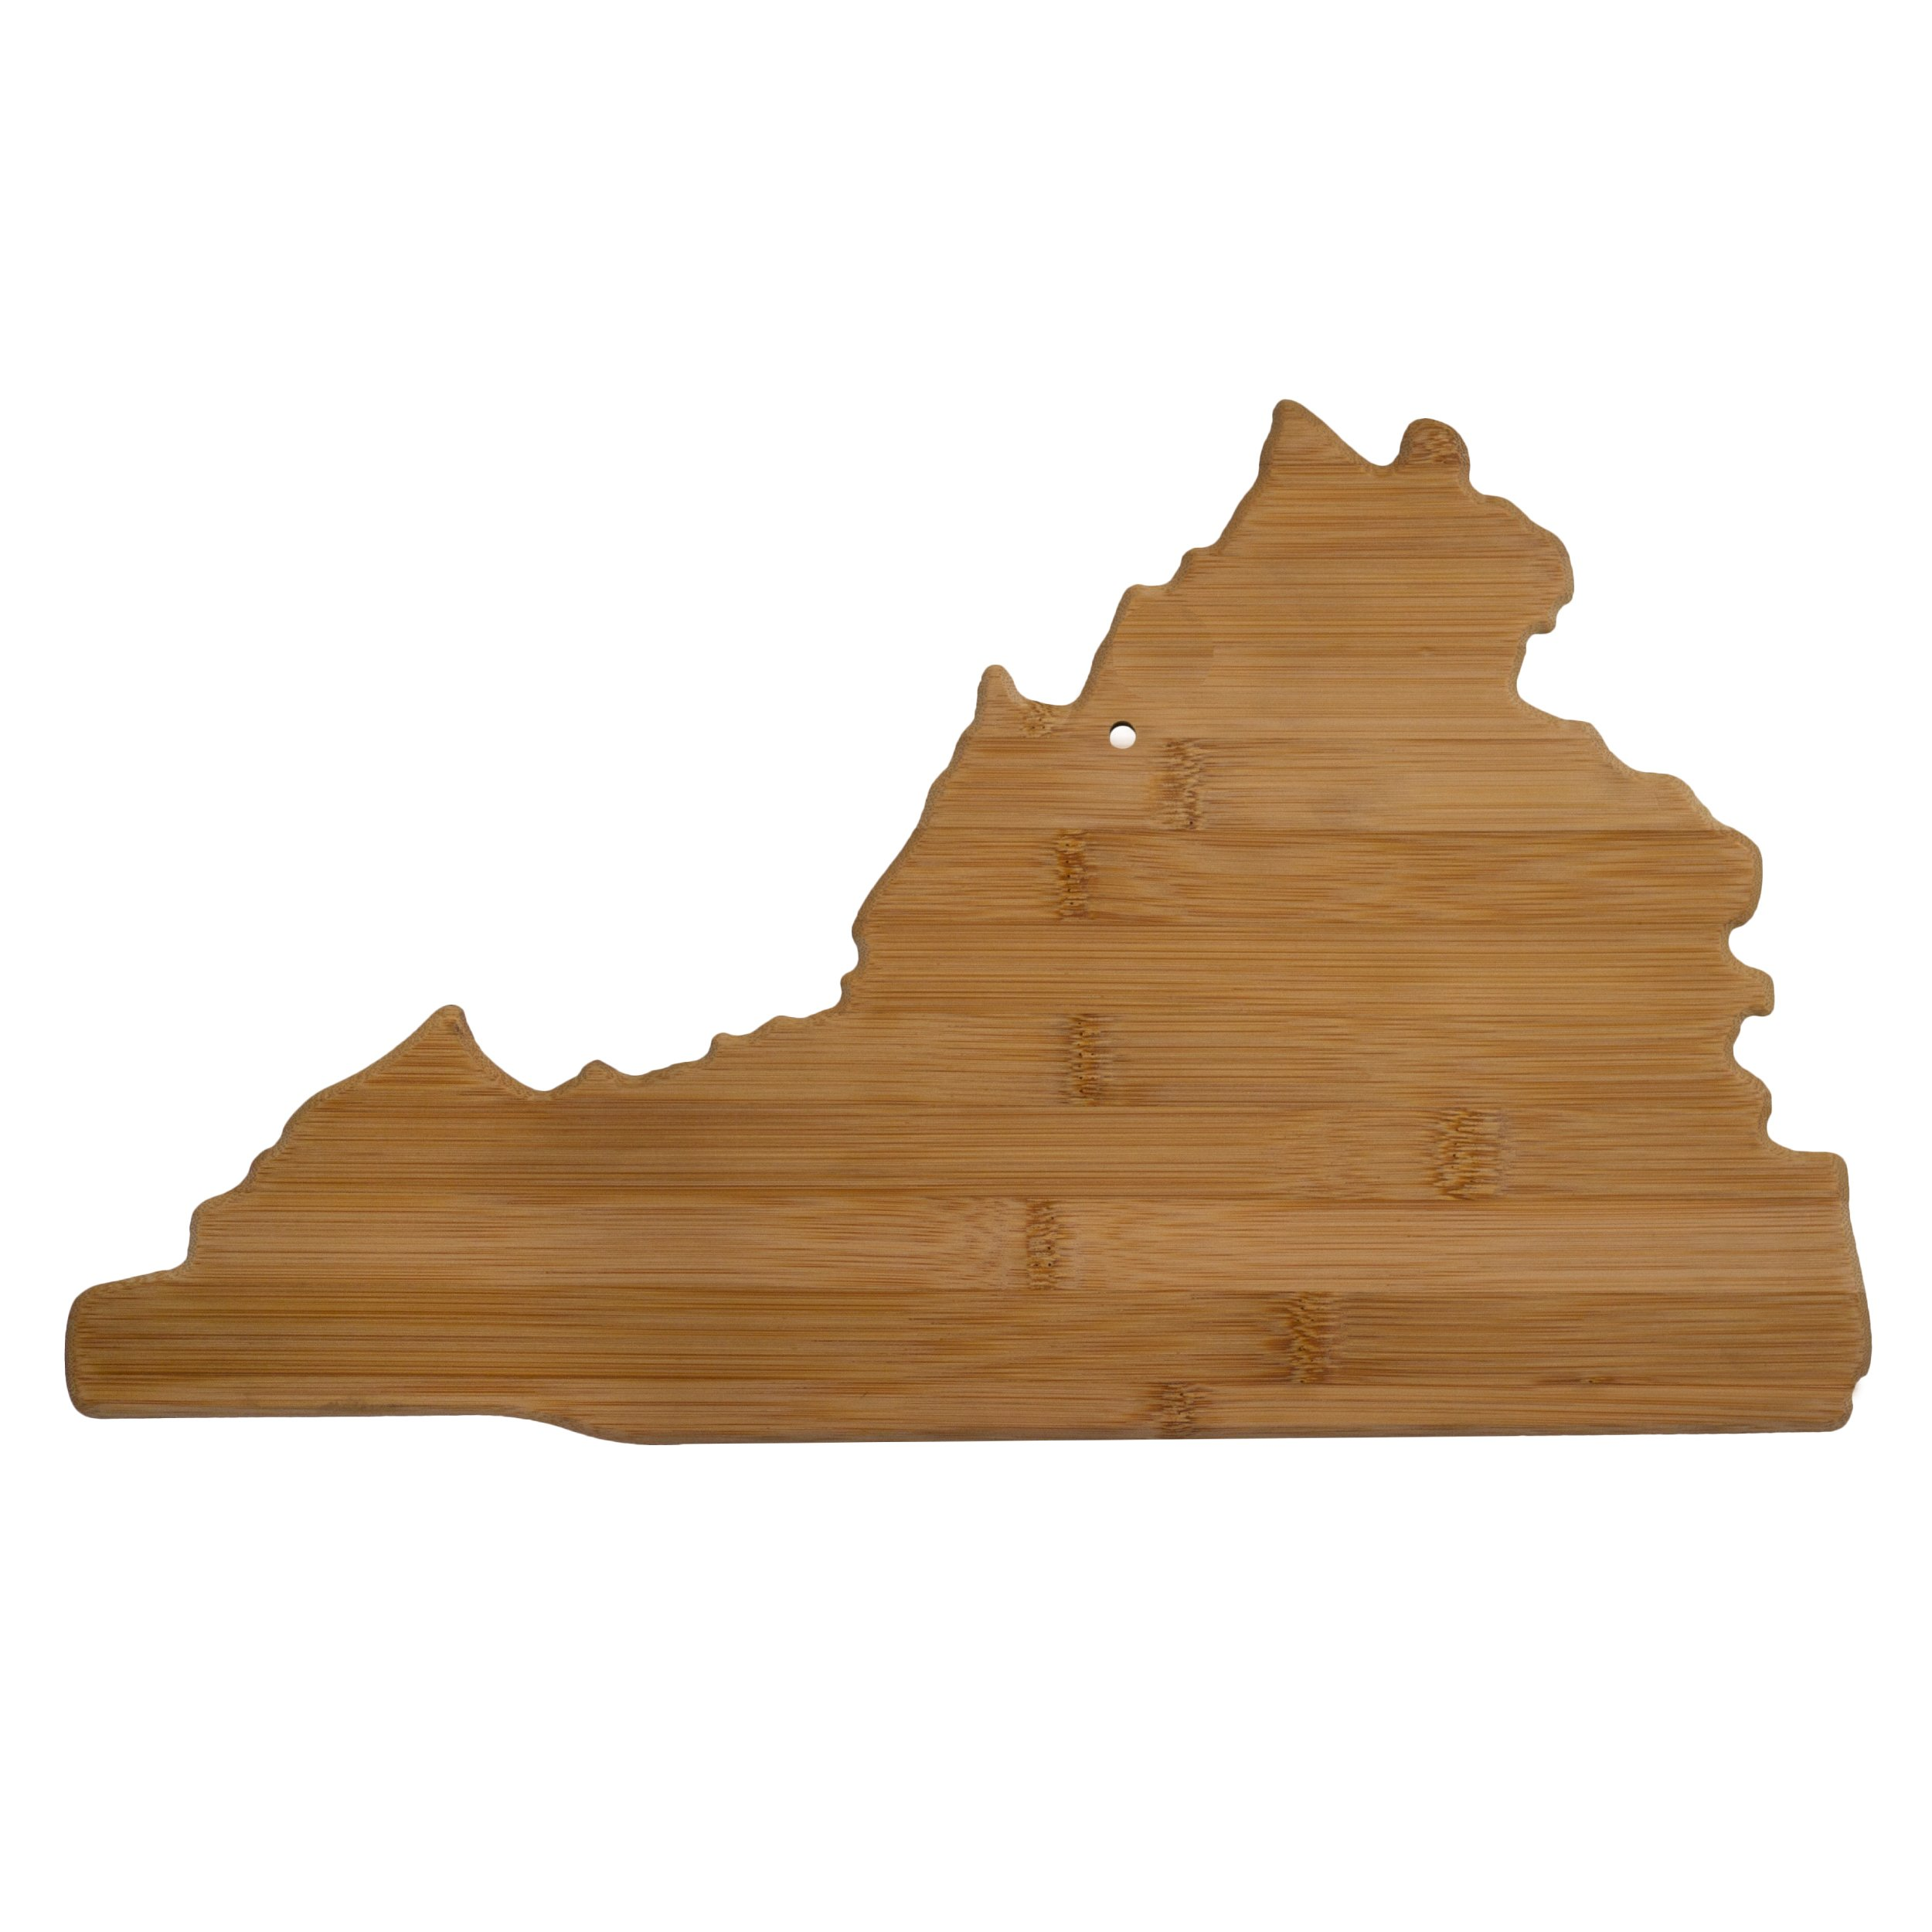 Totally Bamboo 20-7985VA Virginia State Shaped Bamboo Serving And Cutting Board, Brown